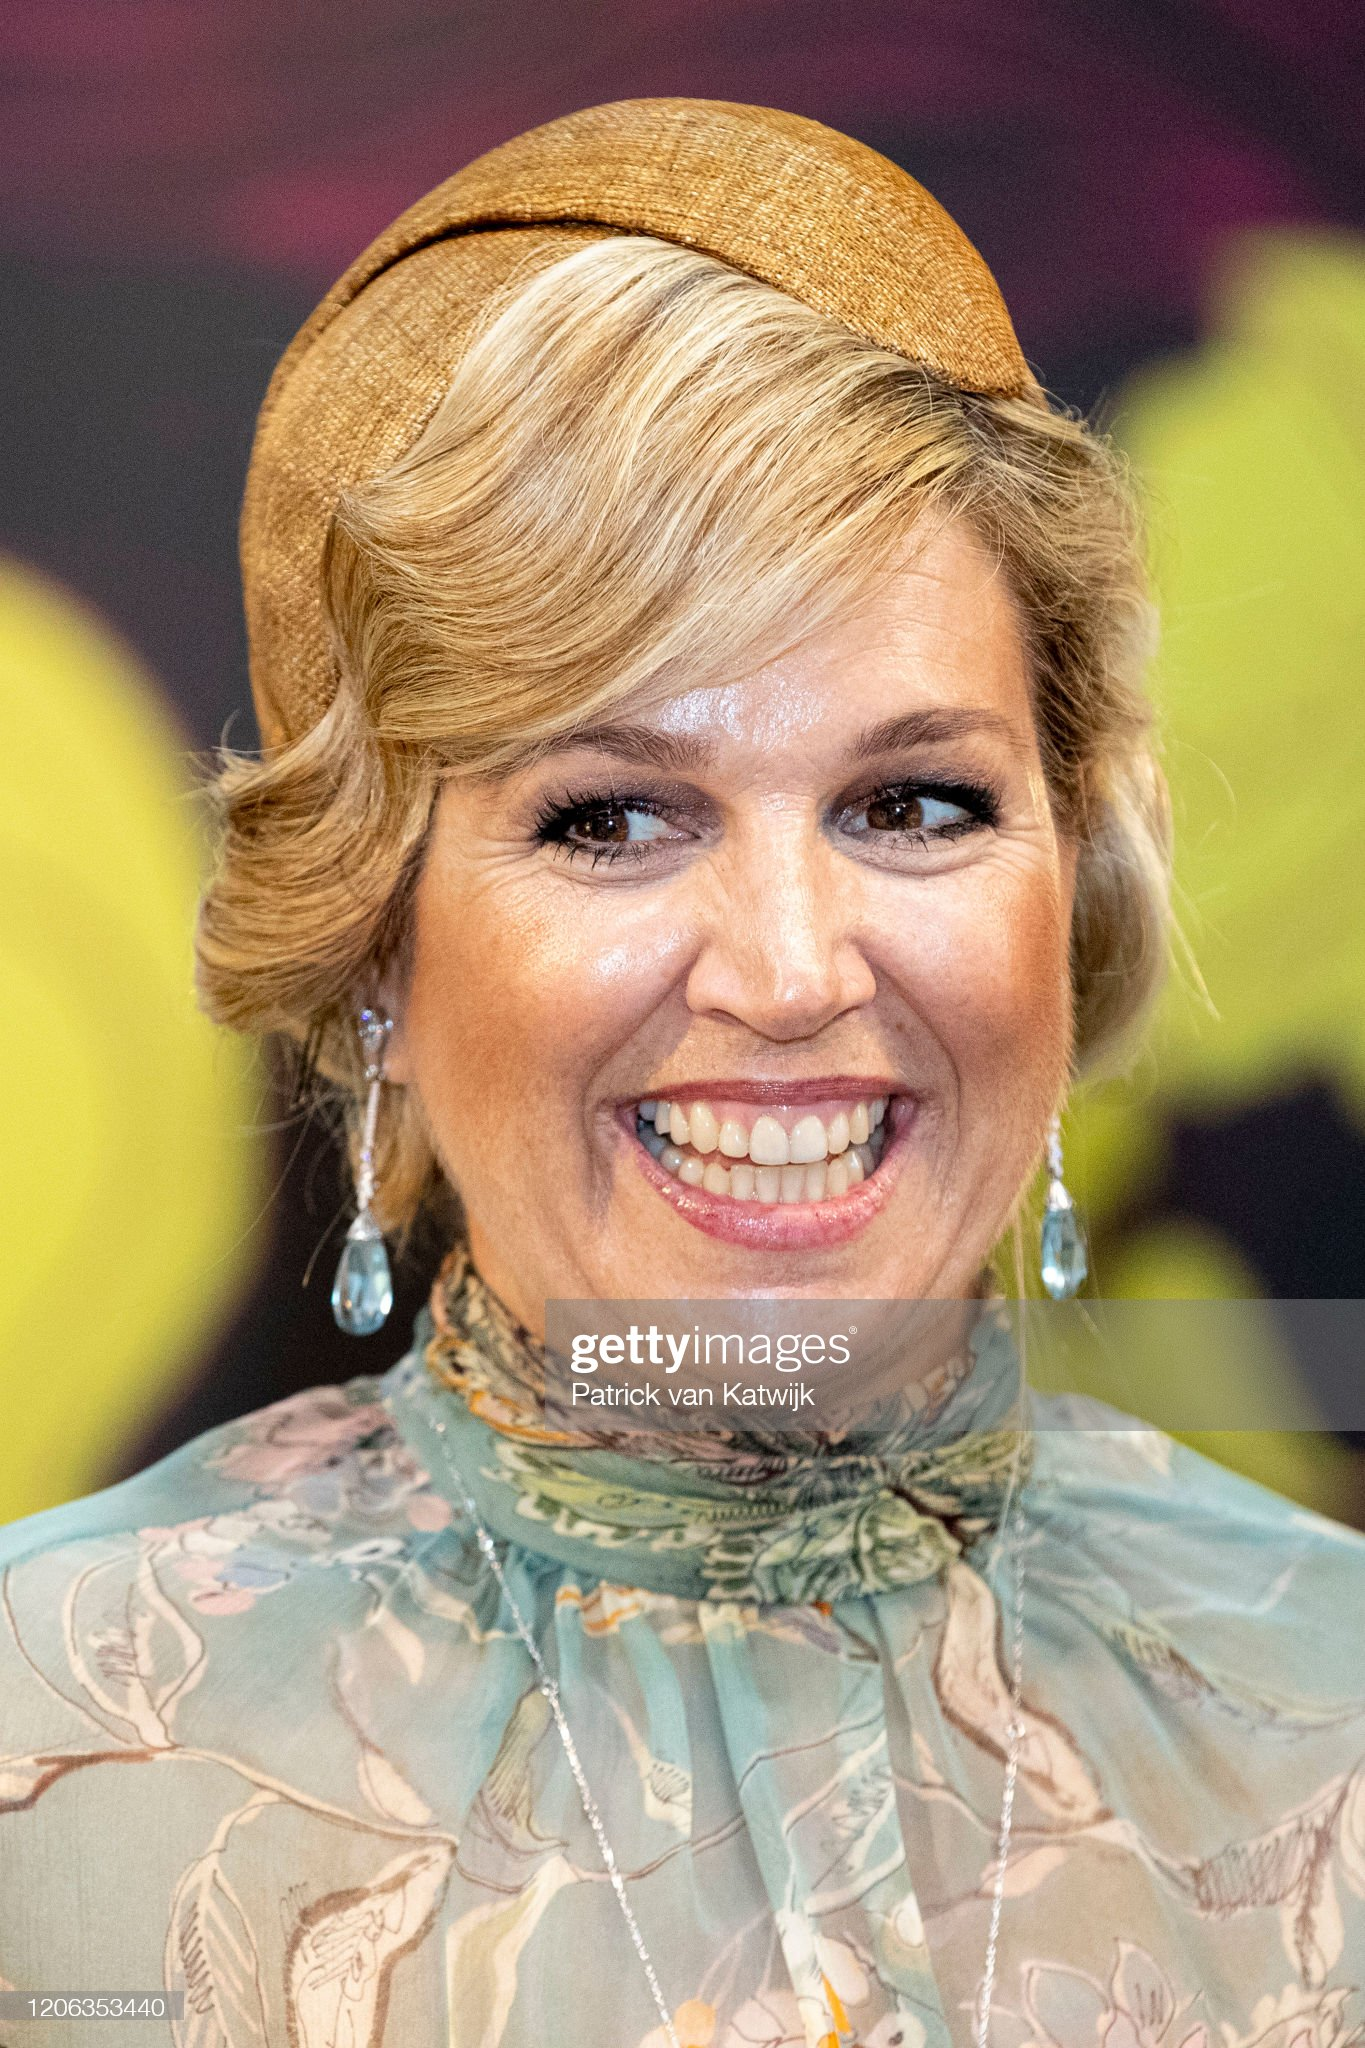 https://media.gettyimages.com/photos/queen-maxima-of-the-netherlands-visit-pipiltin-chocolate-factory-on-picture-id1206353440?s=2048x2048